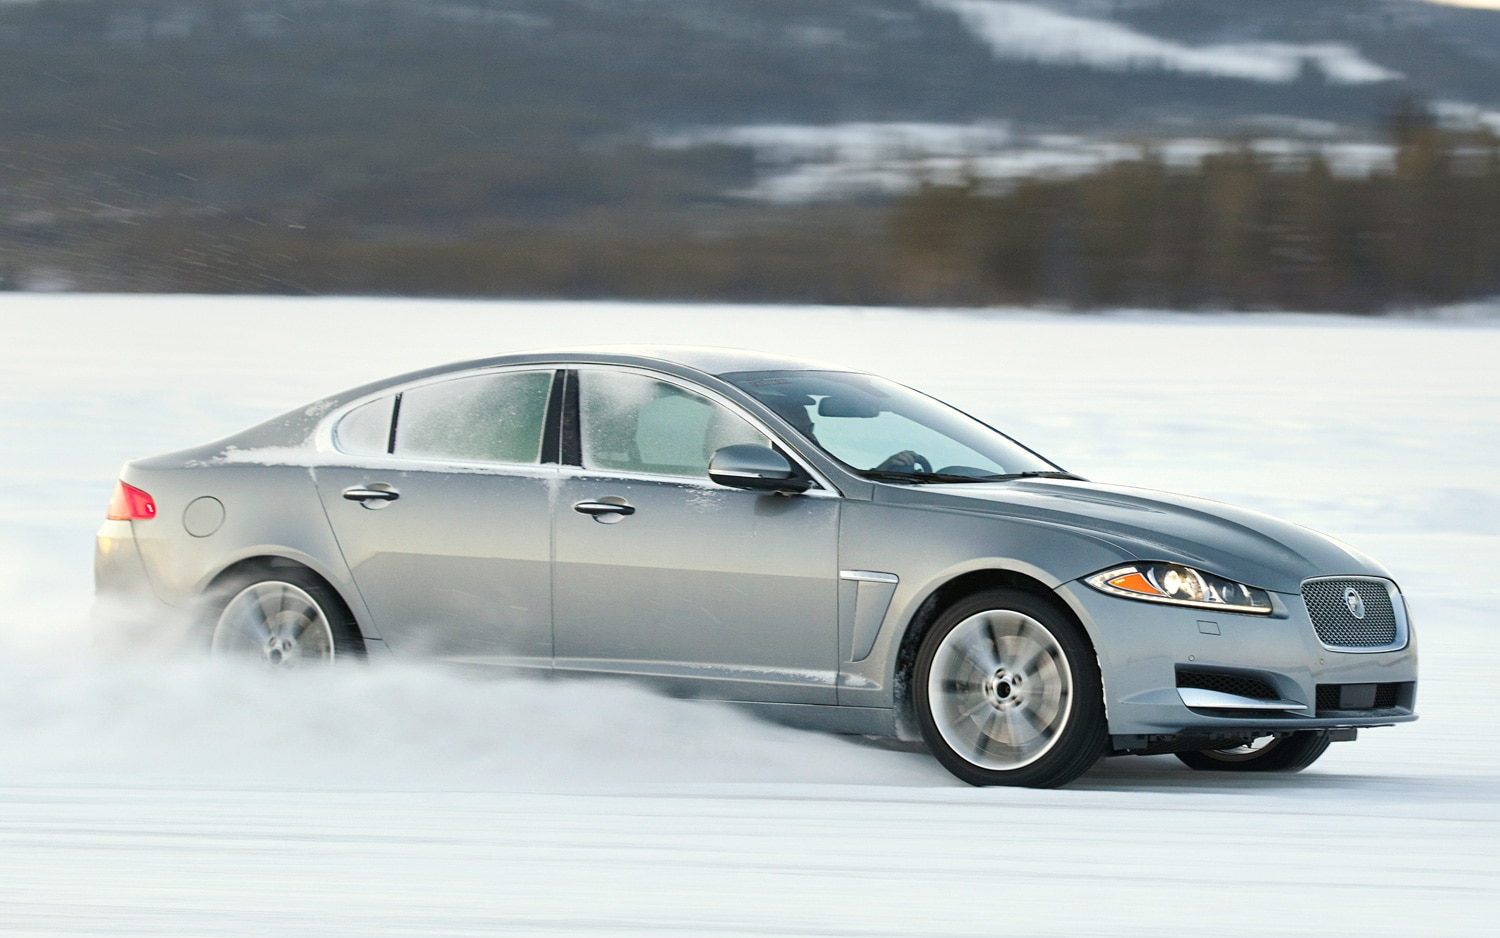 2013 Jaguar XF 30 AWD Side View In Snow1